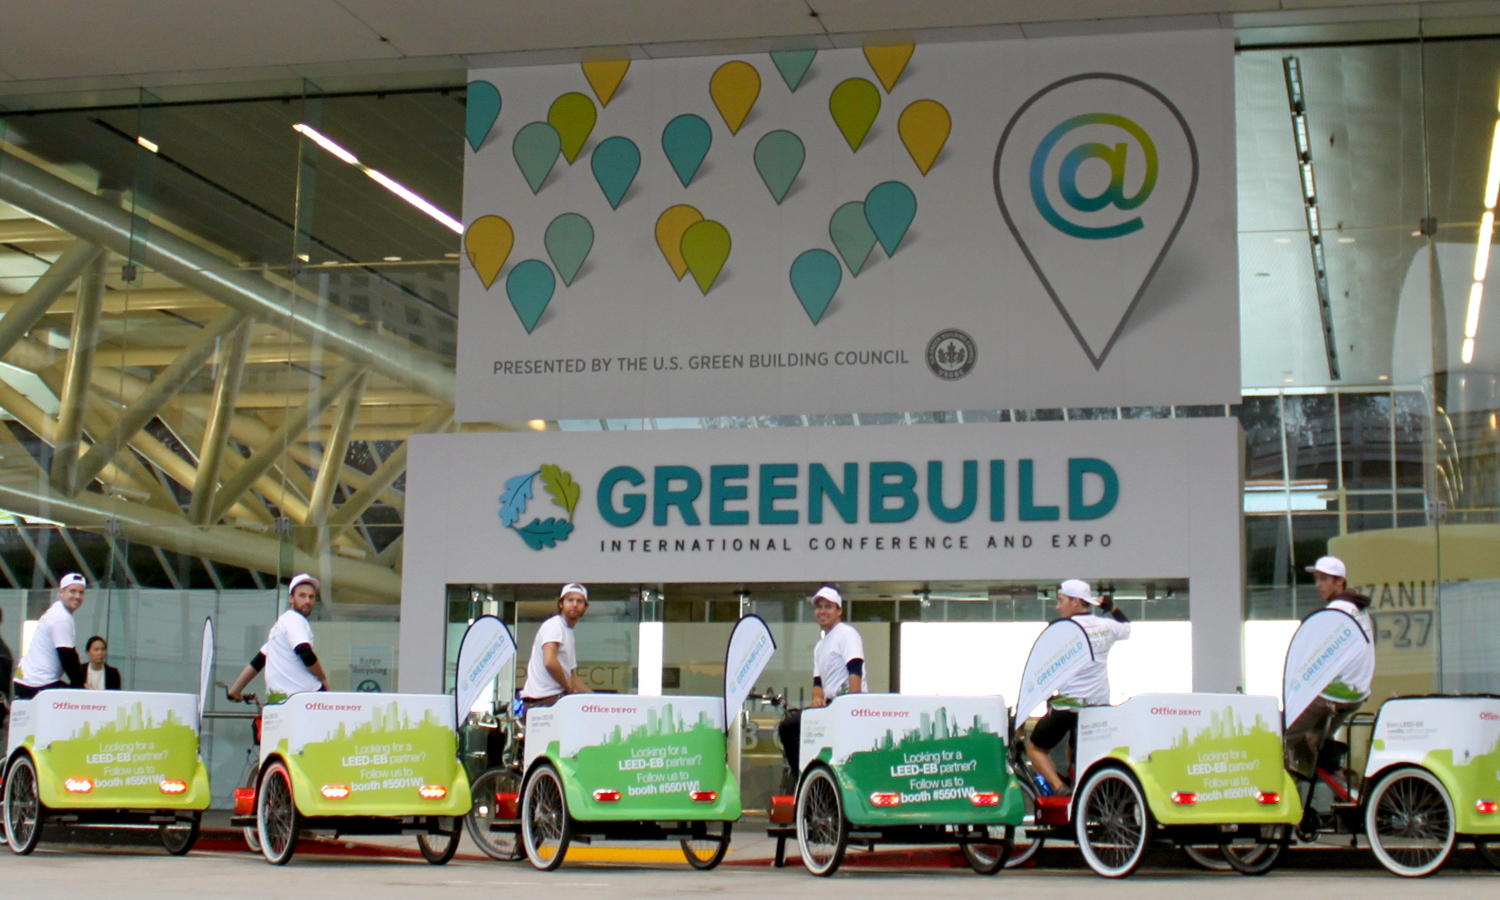 Greenbuild Pedicab Sponsorship